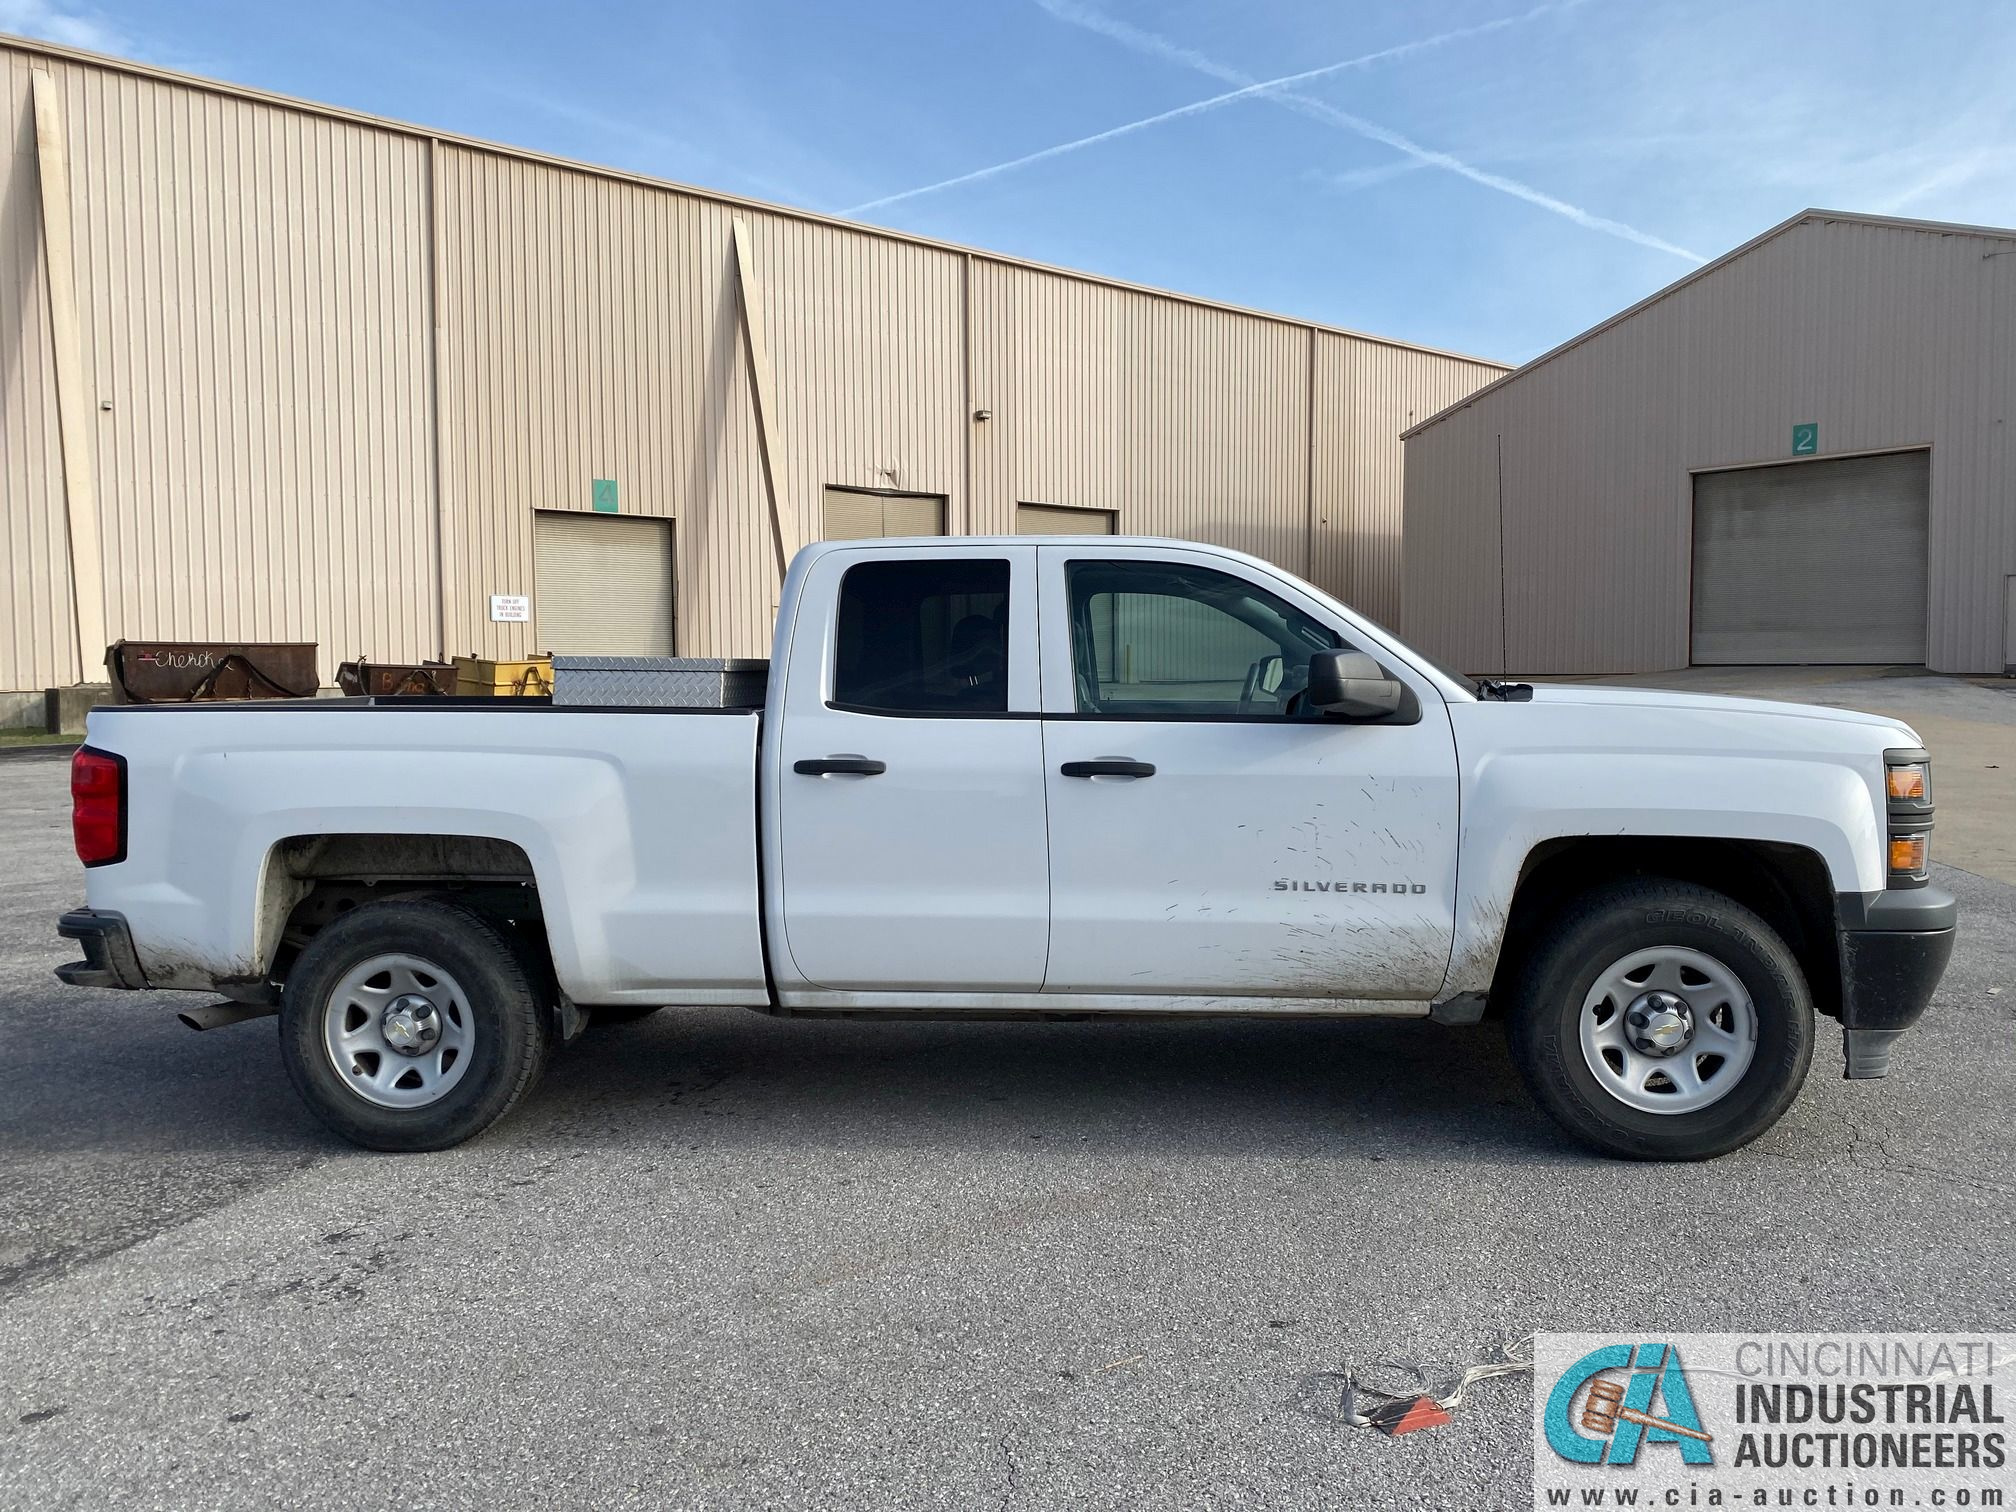 2014 CHEVROLET SILVERADO 1500 PICK UP TRUCK; VIN# 1GCRCPEH1EZ239274, 67,252 MILES SHOWING, 4.3 L, - Image 2 of 13